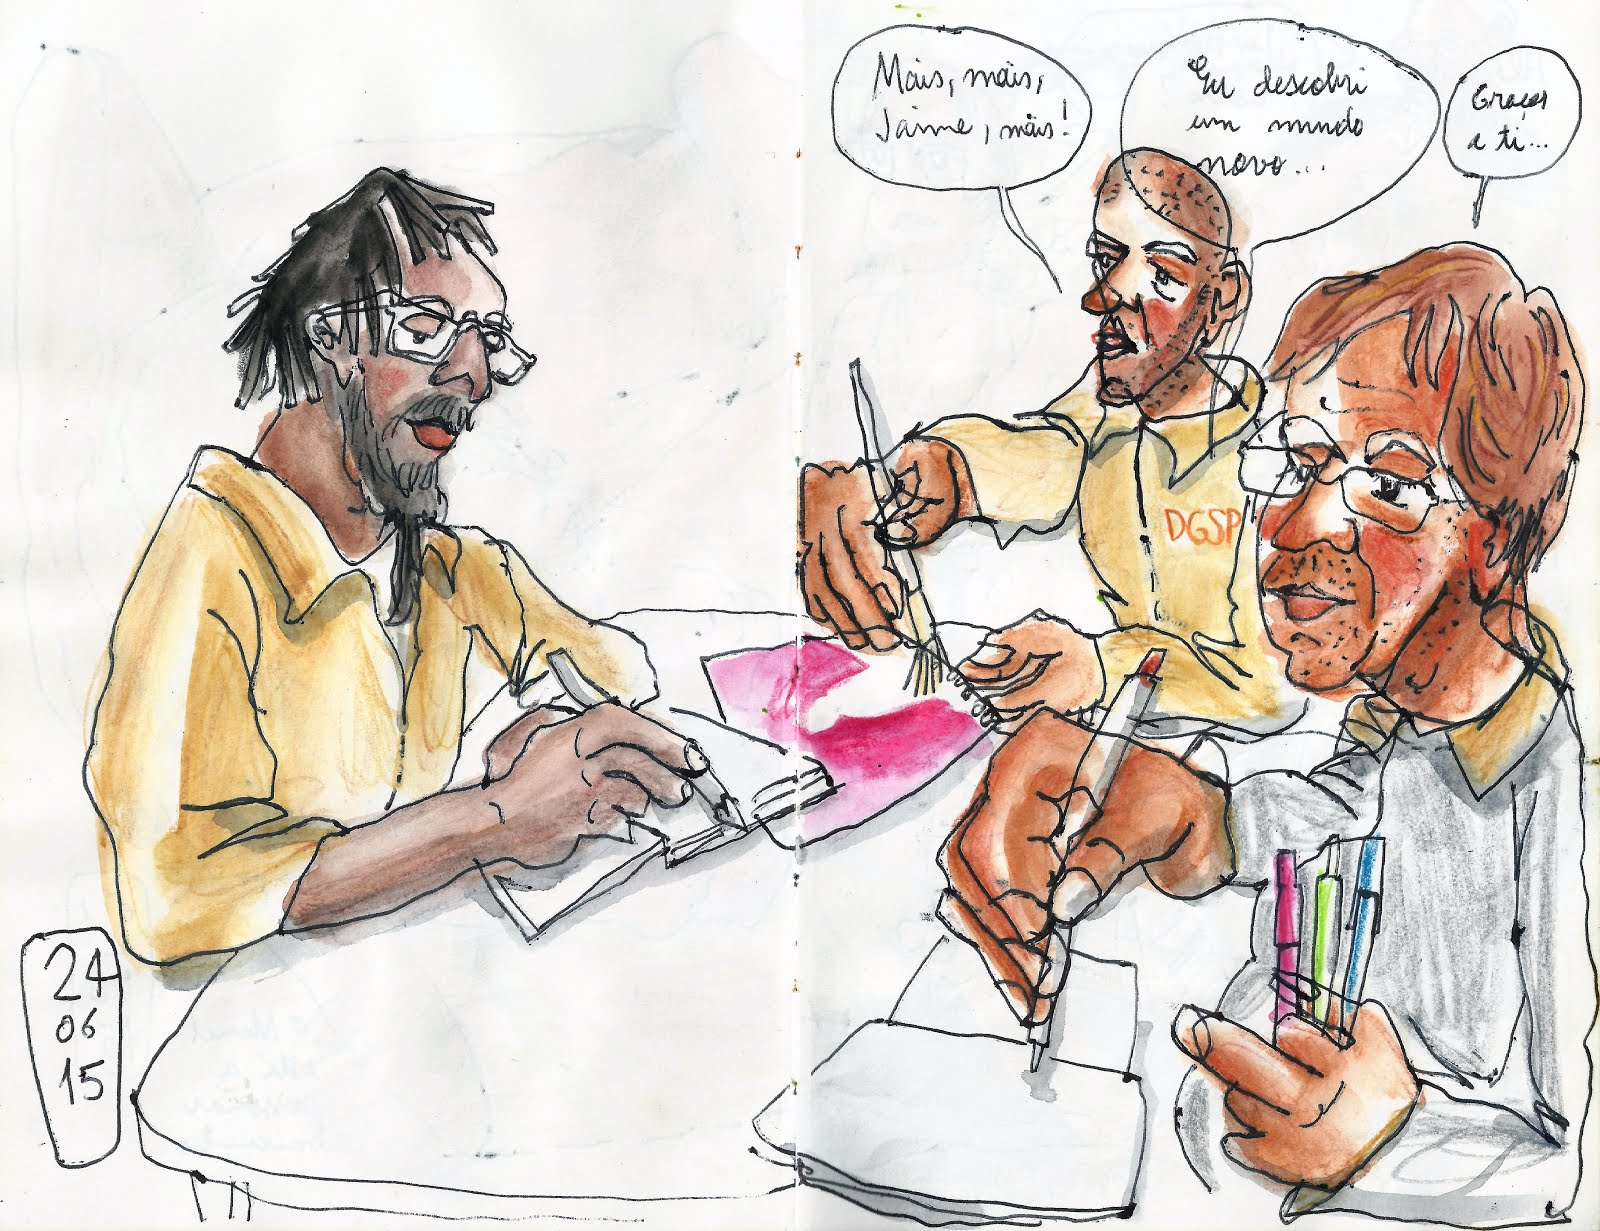 Lecture 8: Drawings Inside a Prison | Urban Sketchers